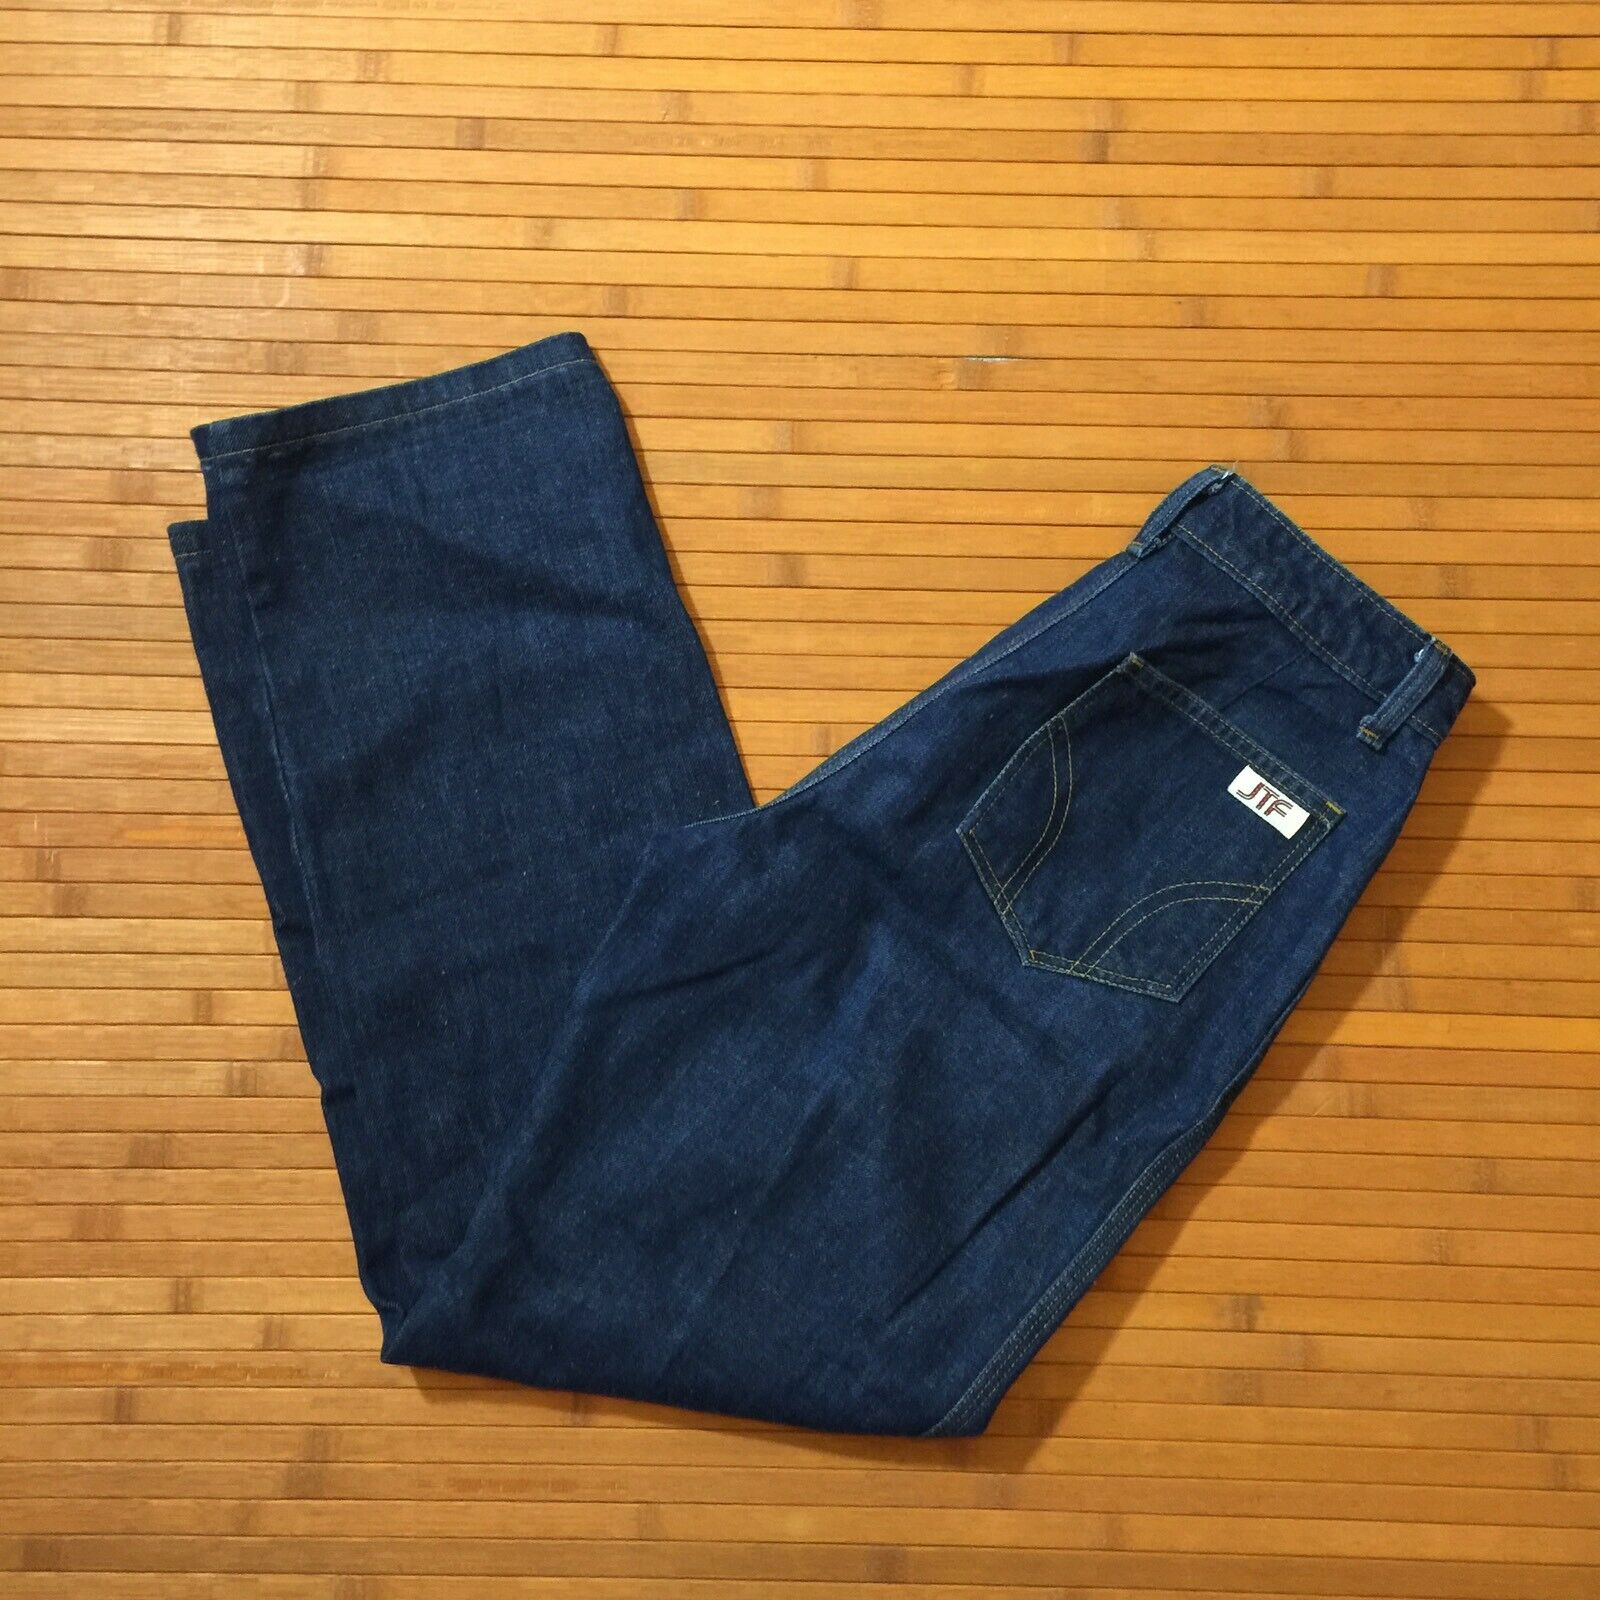 Vintage Sears Jeans That Fit Dark Flare Jeans SZ 12